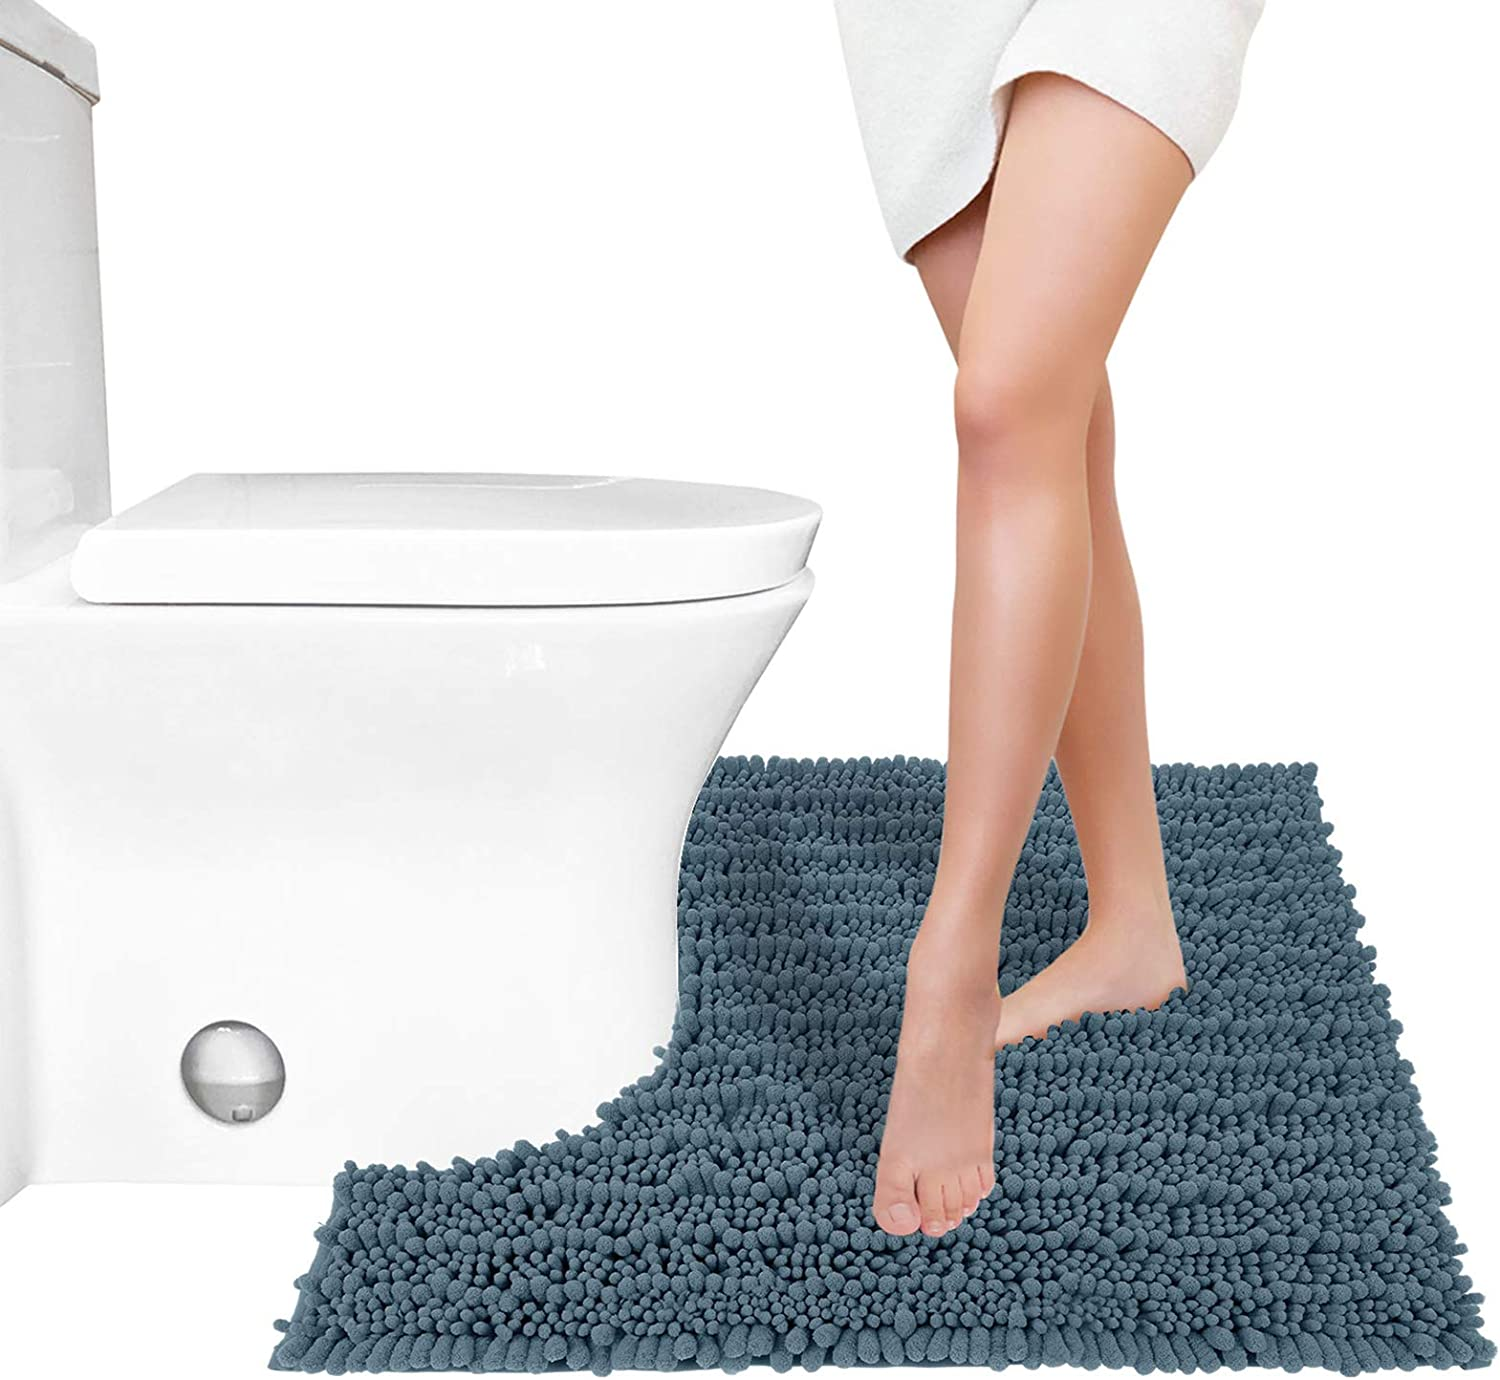 Yimobra Luxury Shaggy Toilet Bath Mat U-Shaped Contour Rugs for Bathroom, 24.4 X 20.4 Inches, Soft and Comfortable, Maximum Absorbent, Dry Quickly, Non-Slip, Machine-Washable, Denim Blue